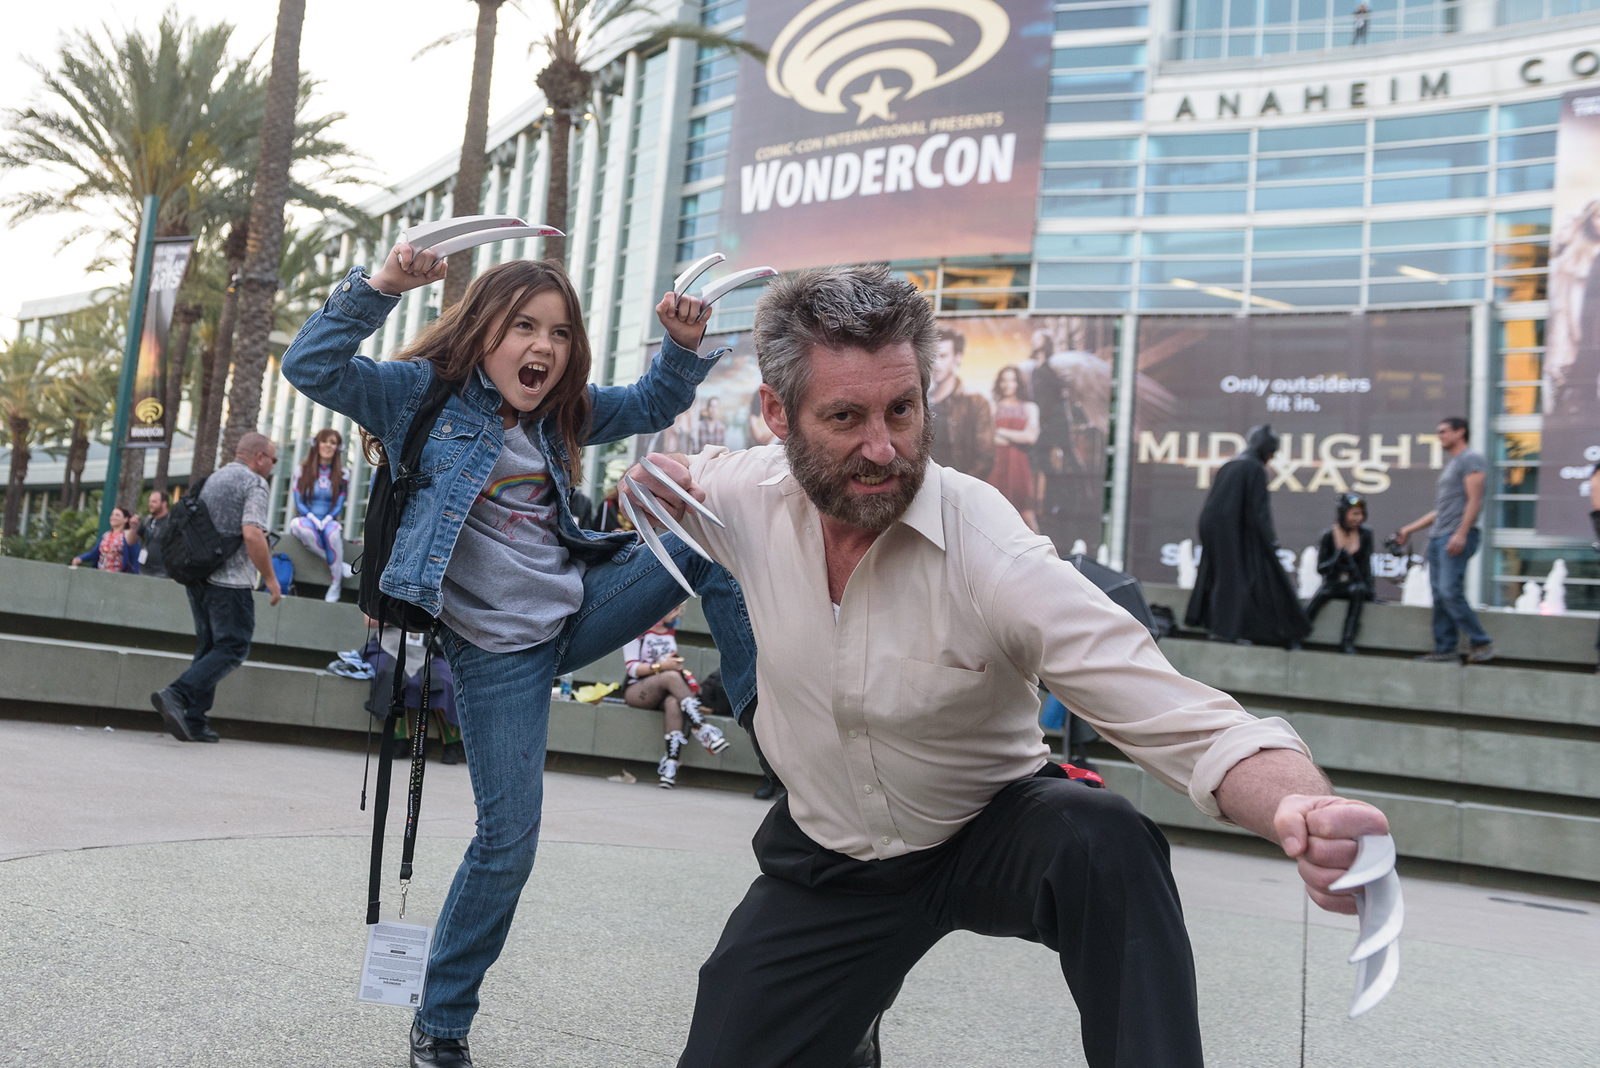 Wonder Con 2017, March 31 - April 2 2017 in Anaheim, California. (Photo by Alan Hess)